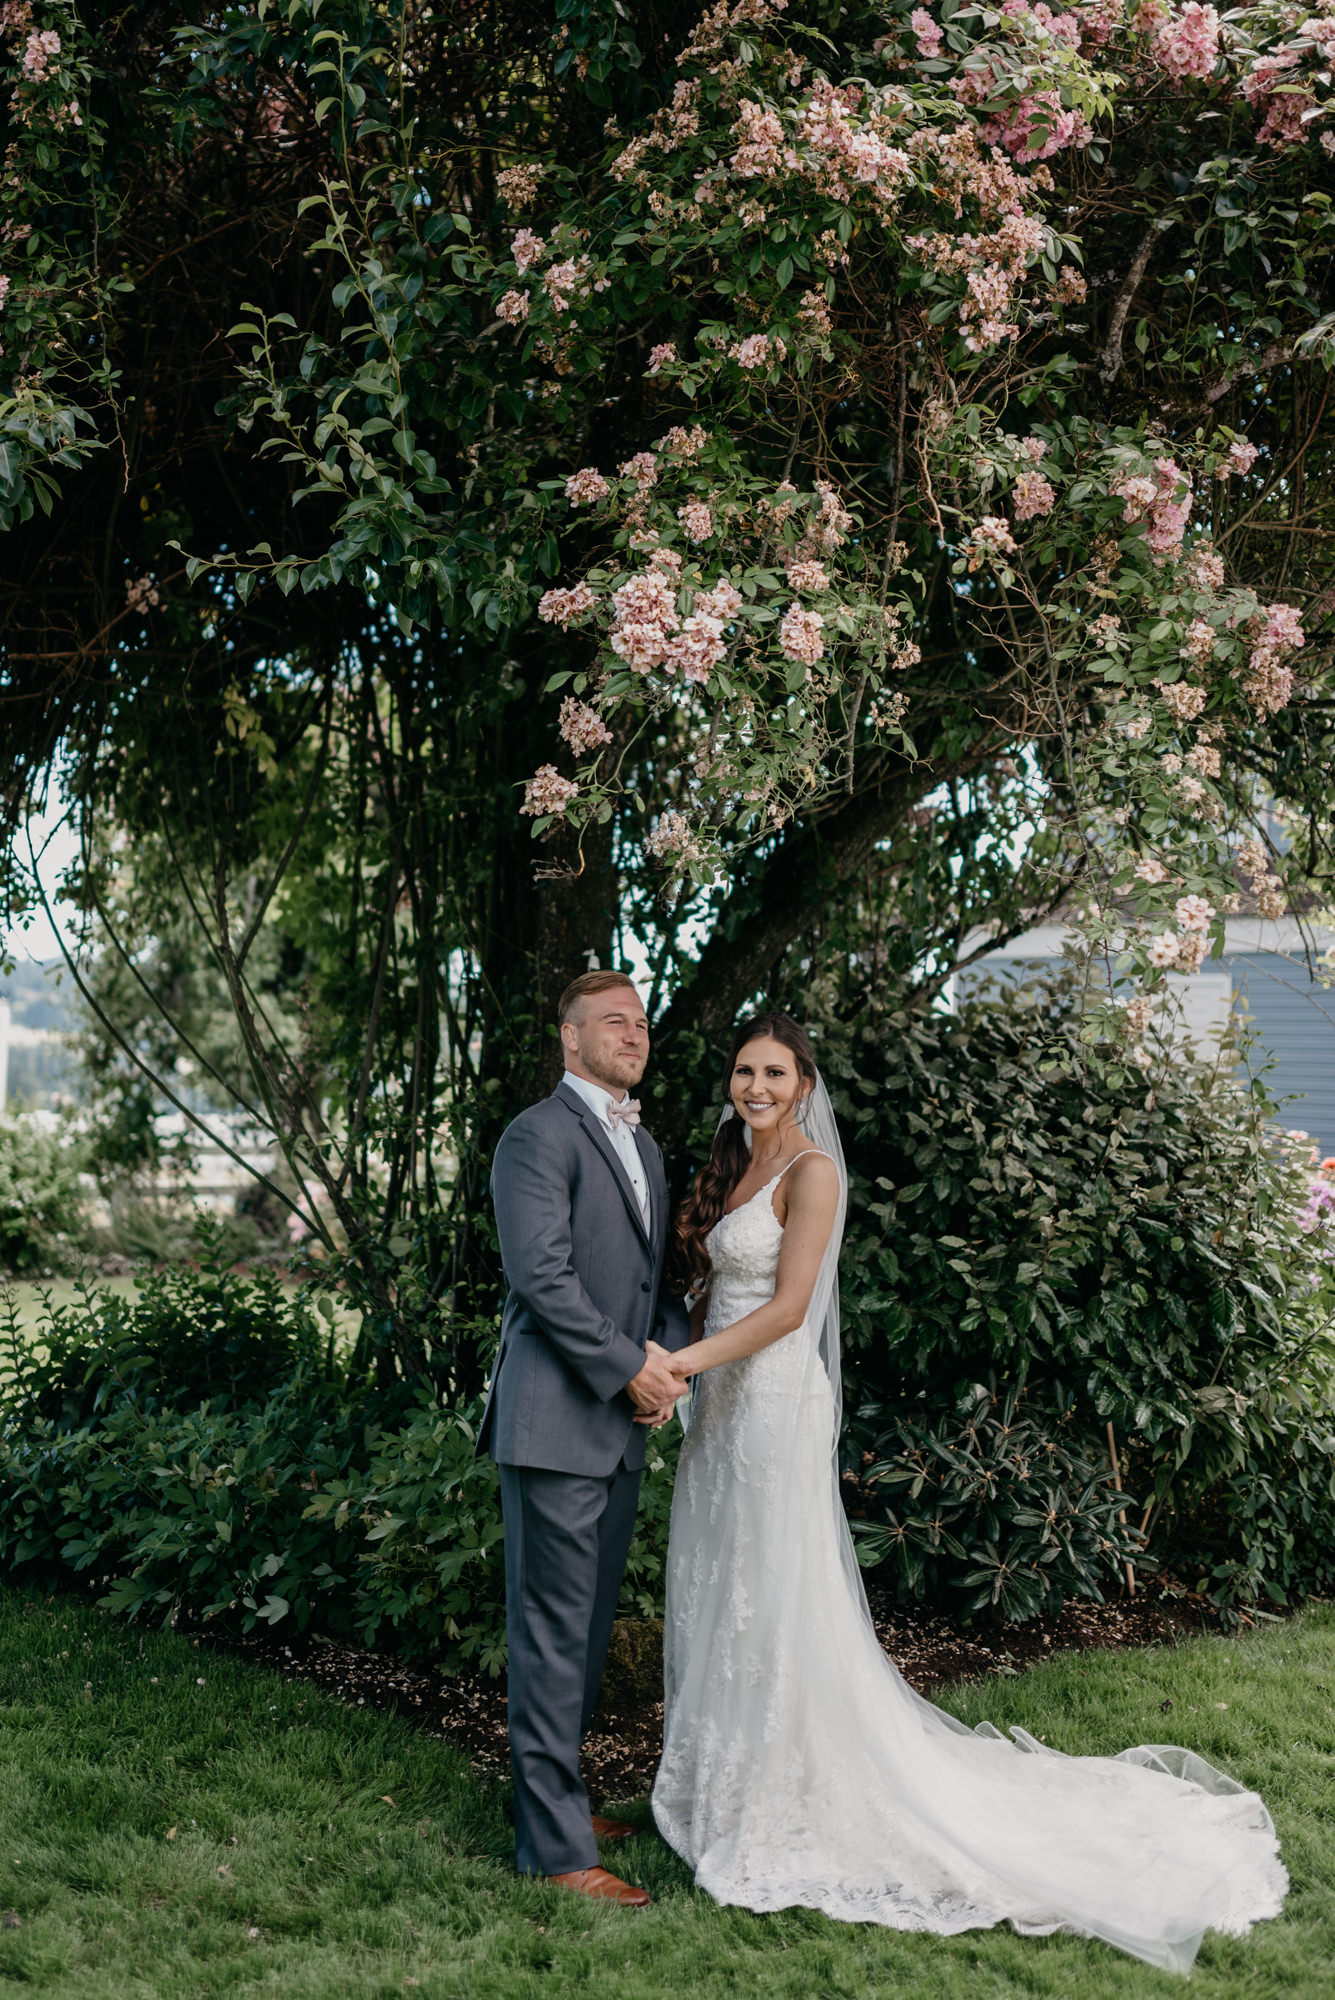 37-lake-oswego-wedding-portland-couple-rose-tree.jpg